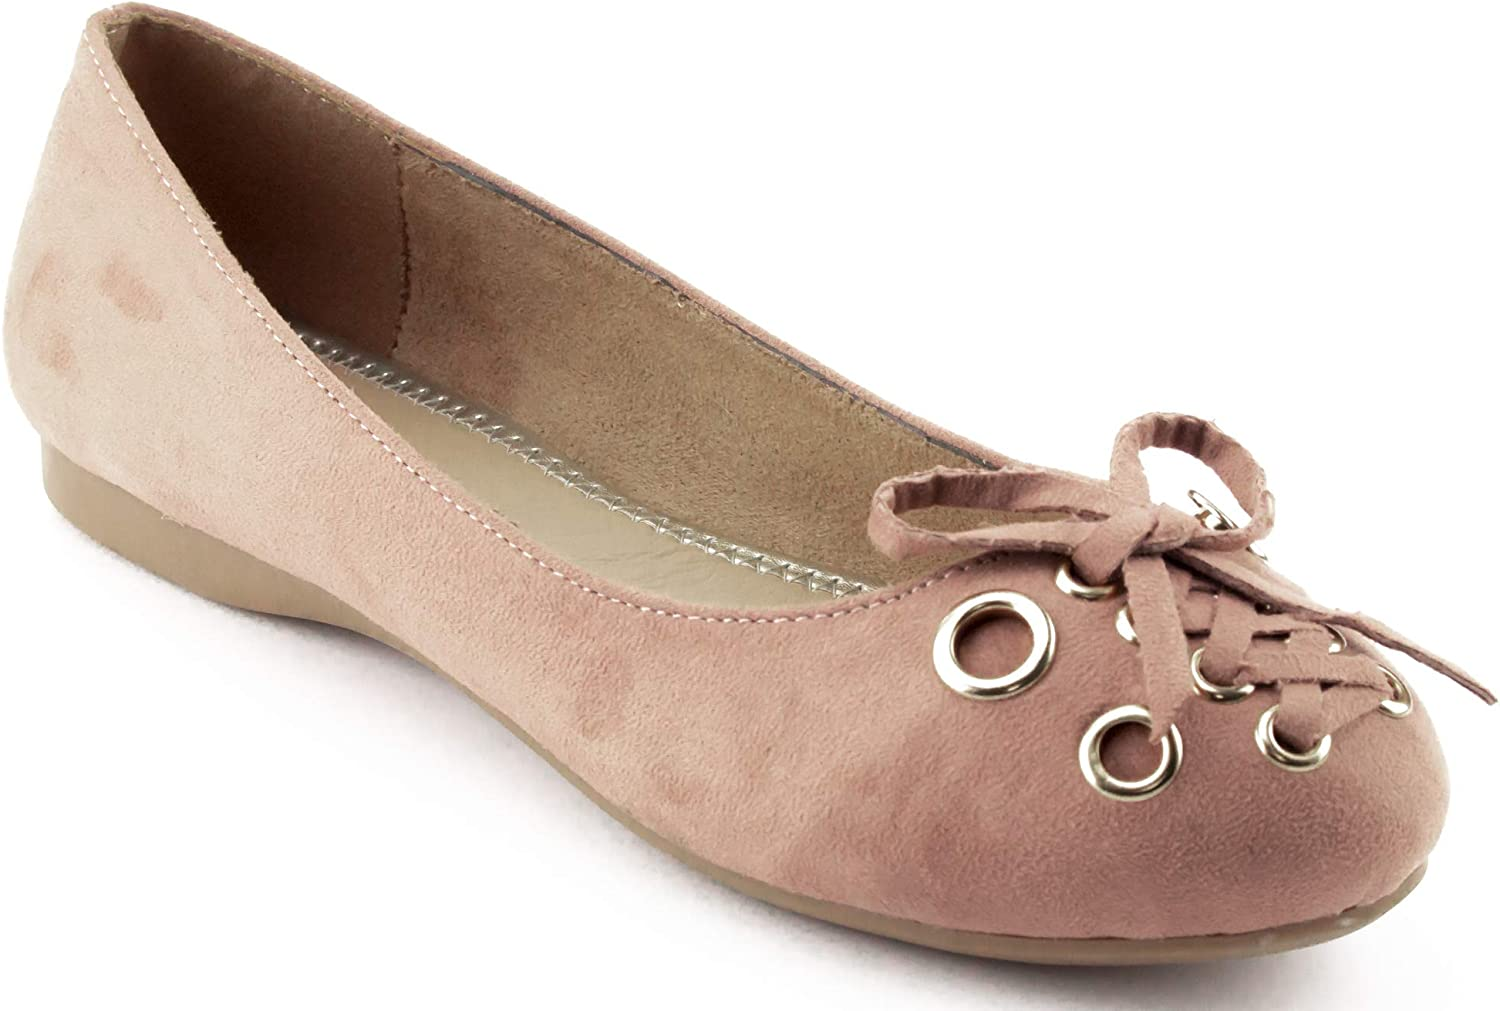 CALICO KIKI Ballet Flats Round-Toe - Comfort Slip On - Faux Suede Bow Tied